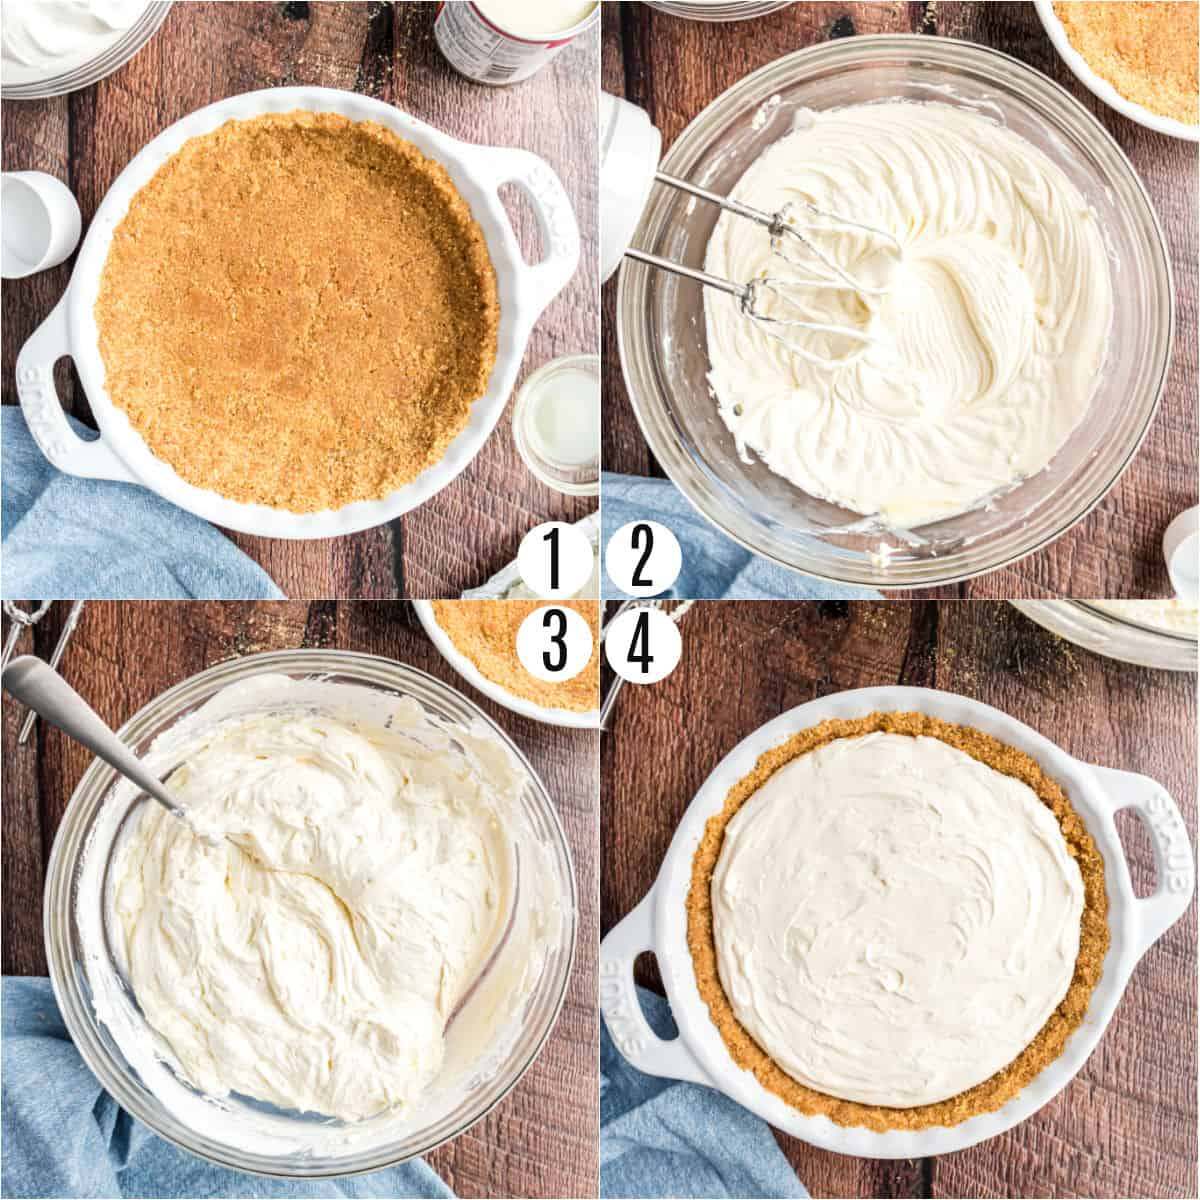 Step by step photos showing how to make cheesecake filling.